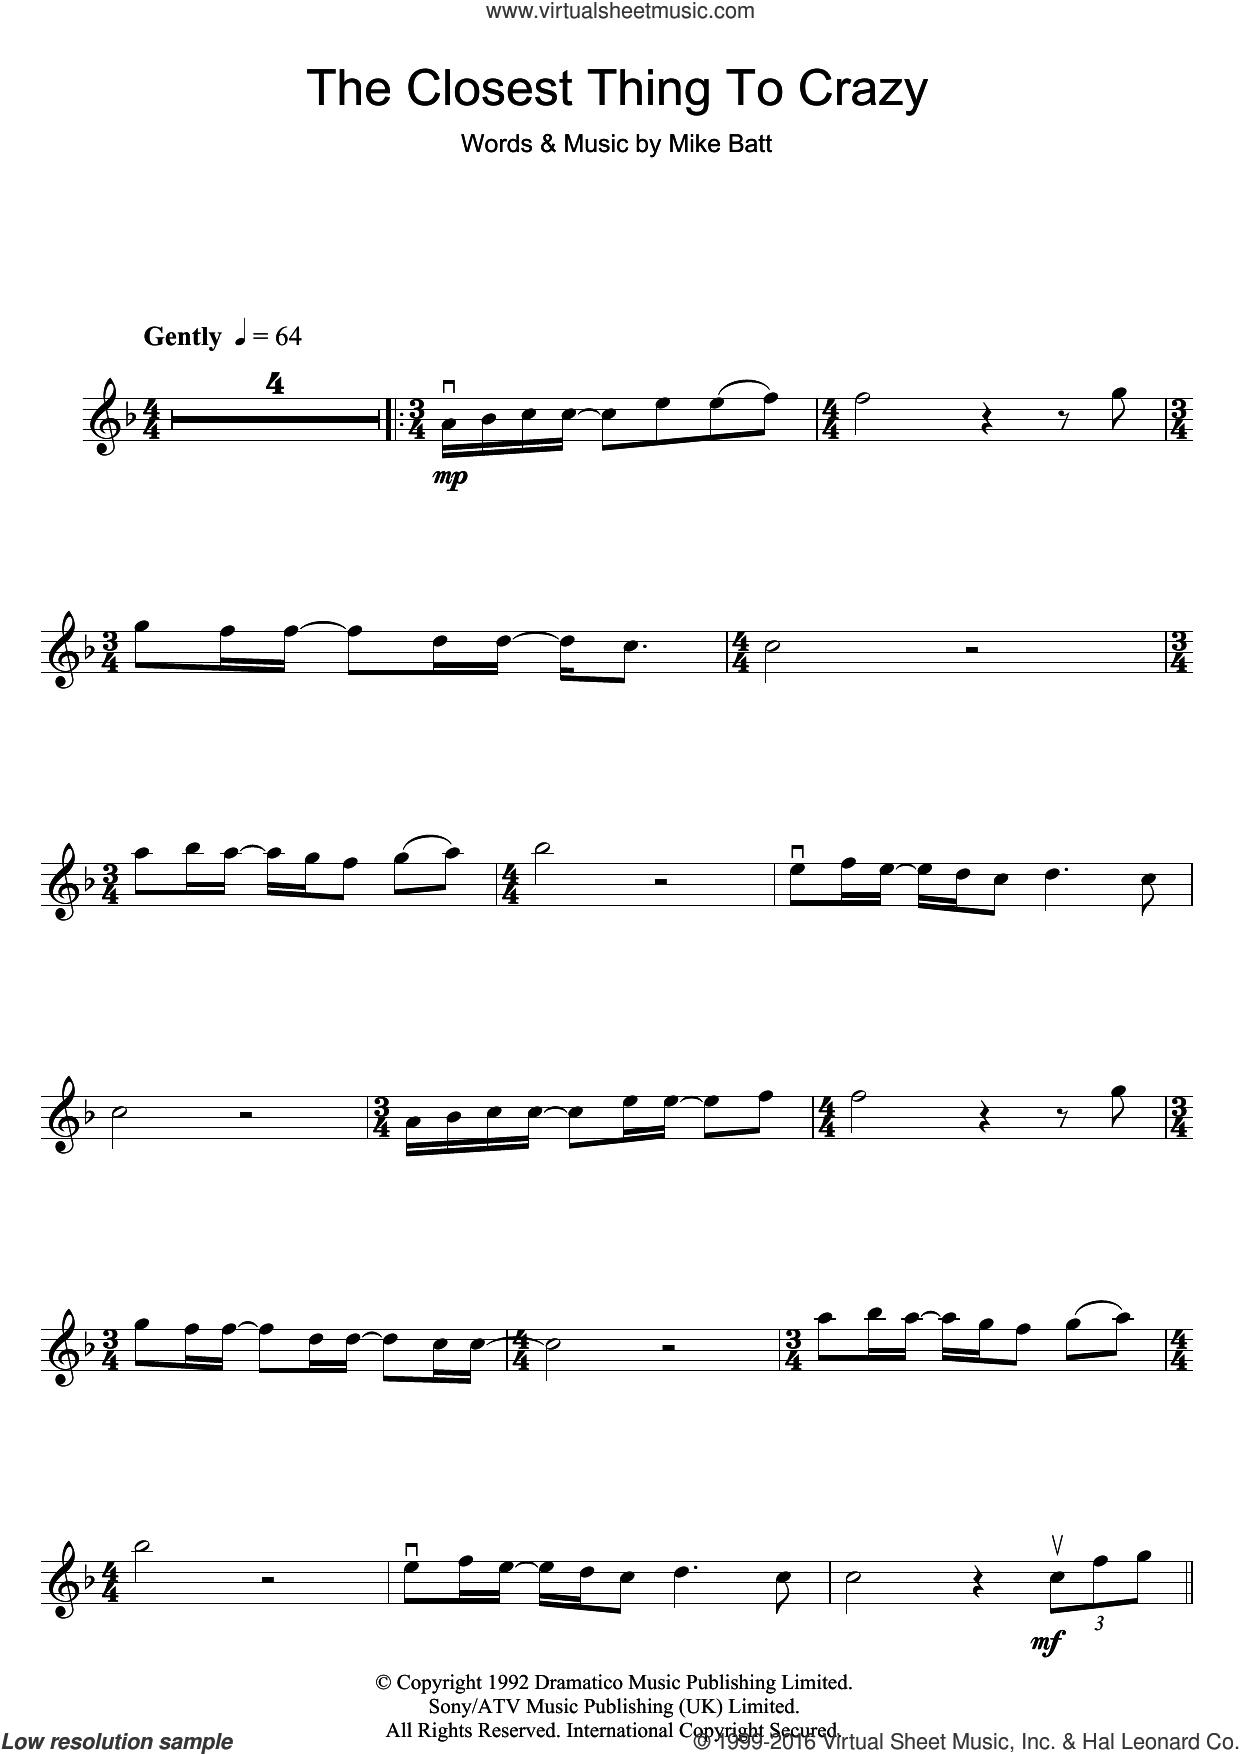 The Closest Thing To Crazy sheet music for violin solo by Katie Melua and Mike Batt, intermediate skill level